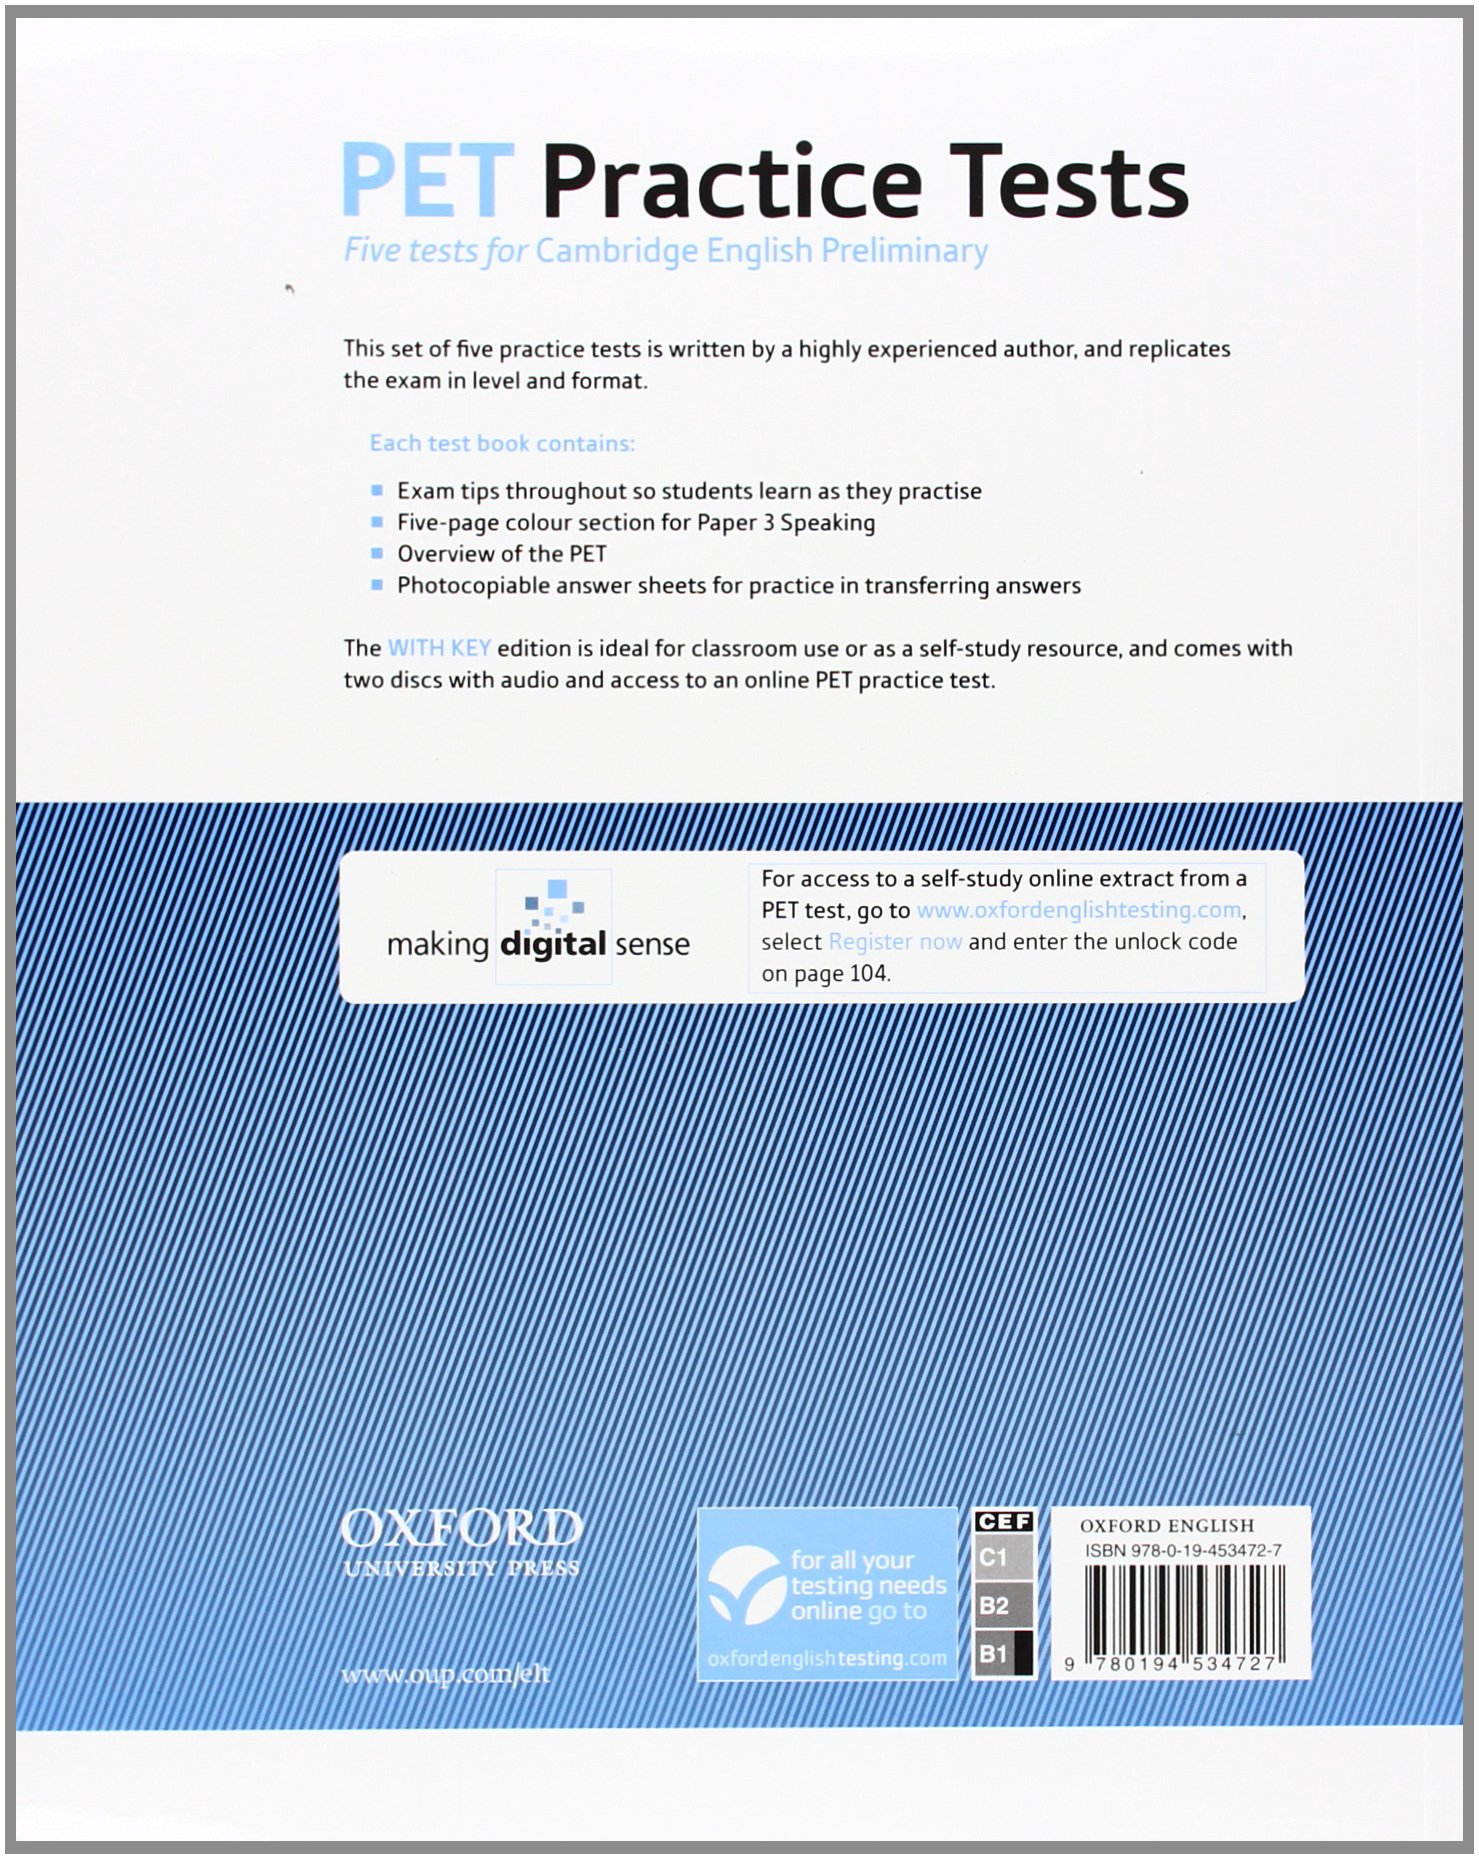 PET Practice Tests: Diana Fried-Booth: 9780194534727: Amazon com: Books